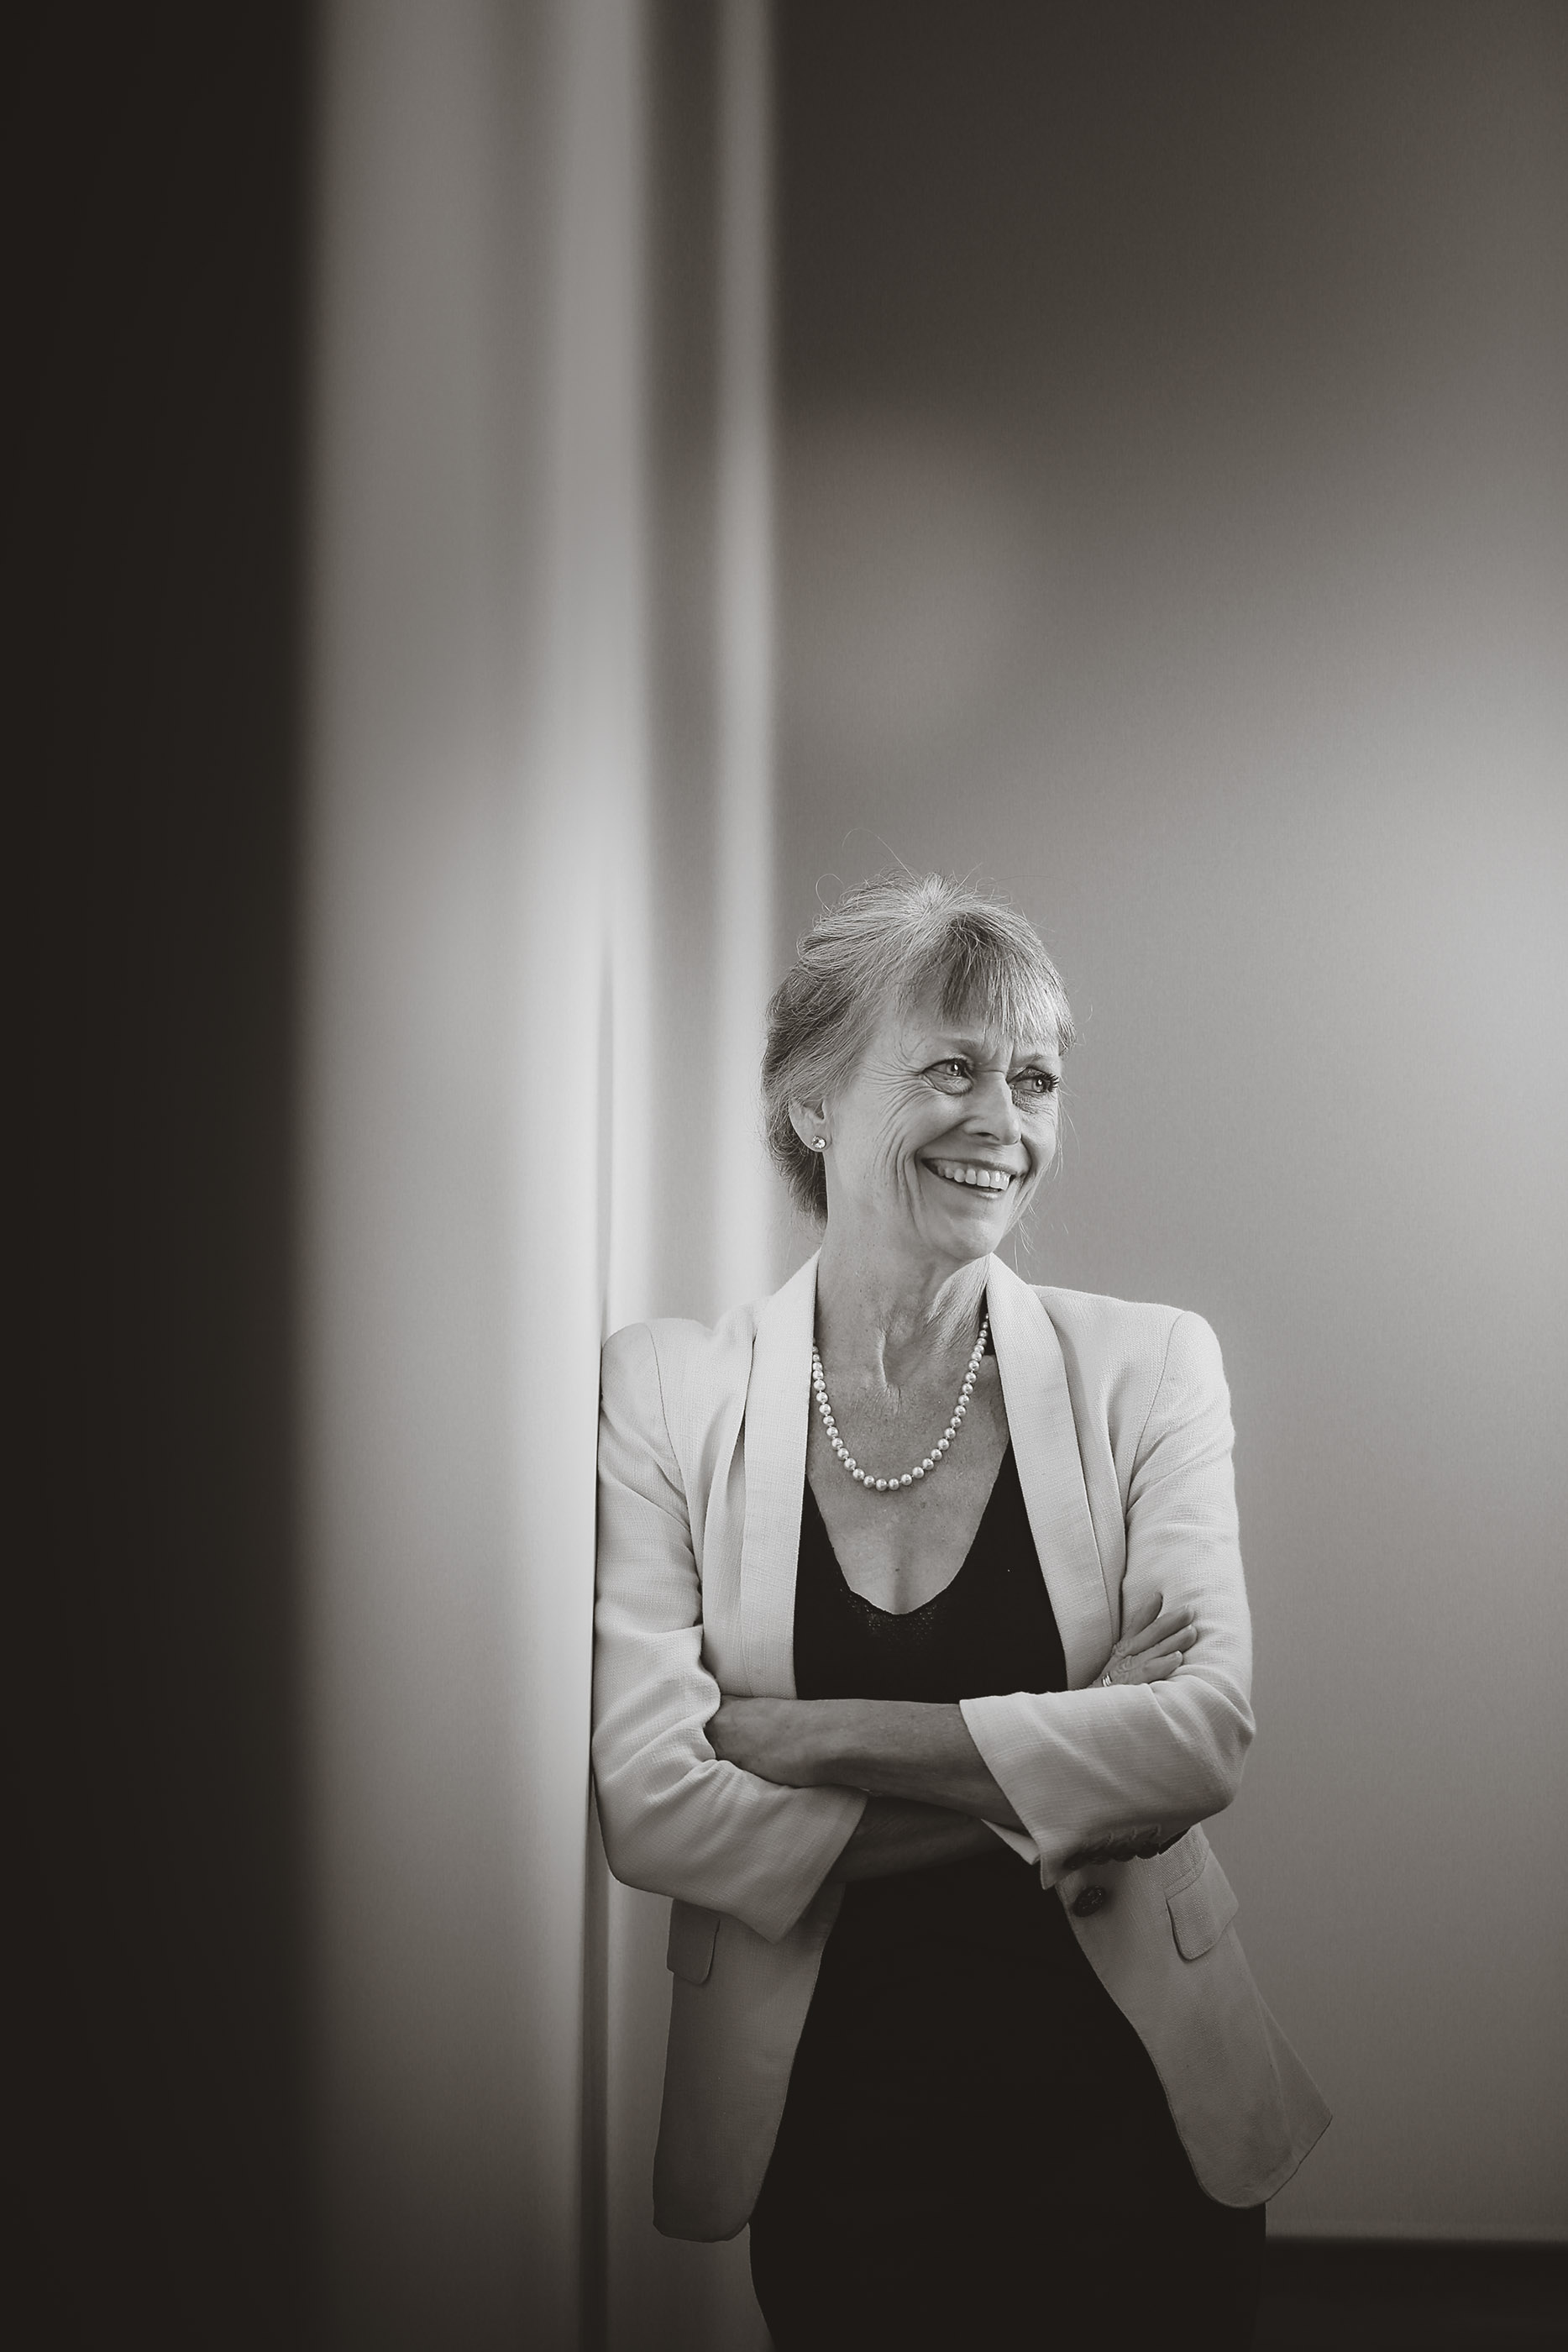 Portrait of Saralyn Reece Hardy, Director at the Spencer Museum of Art in Lawrence, KS.